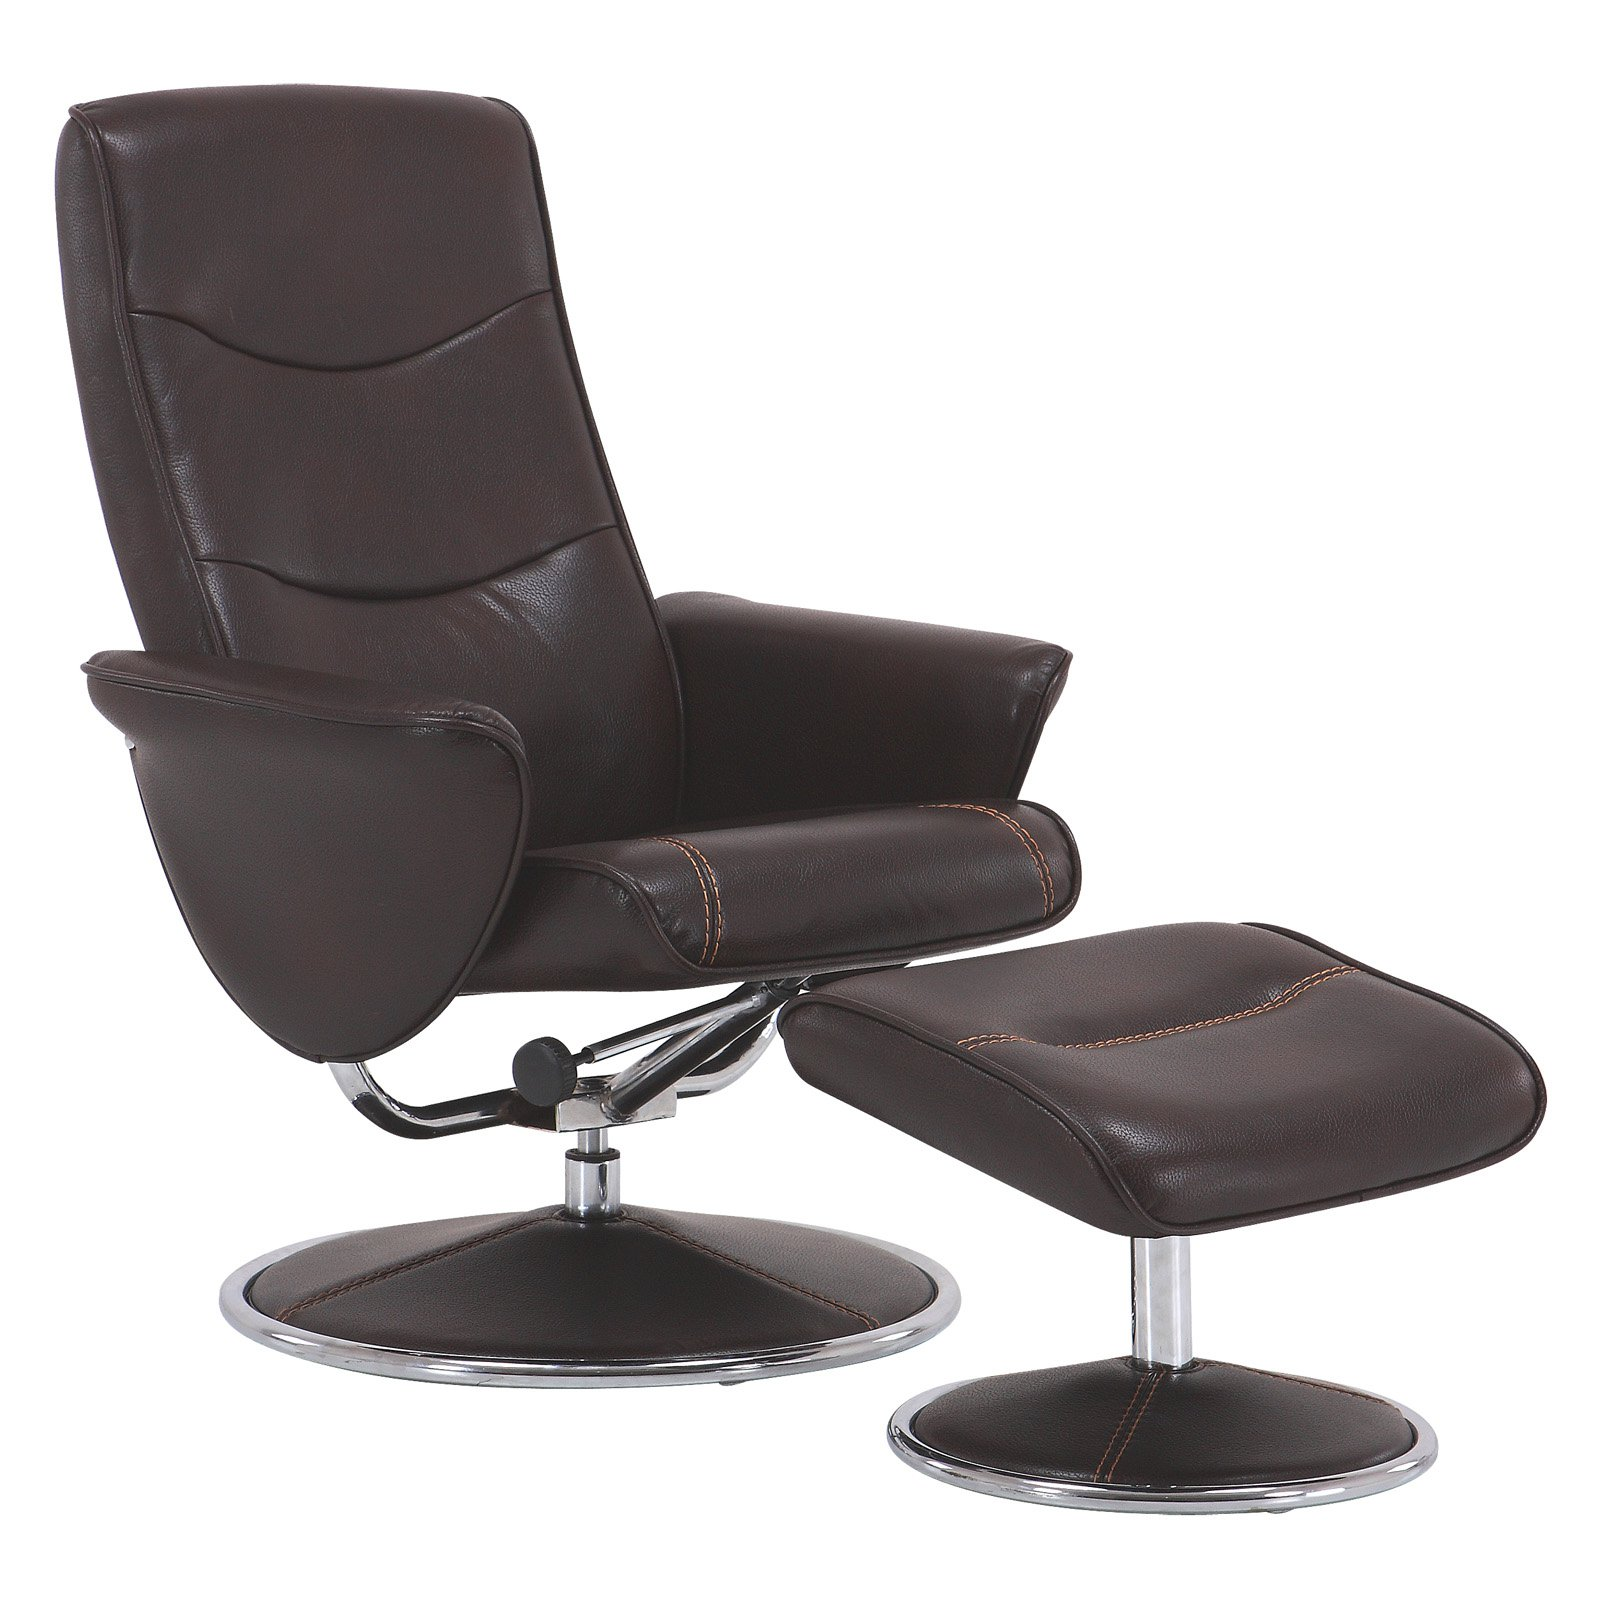 Vogue Furniture Direct High Back Manual Swivel Recliner with Ottoman-Brown VF1541002